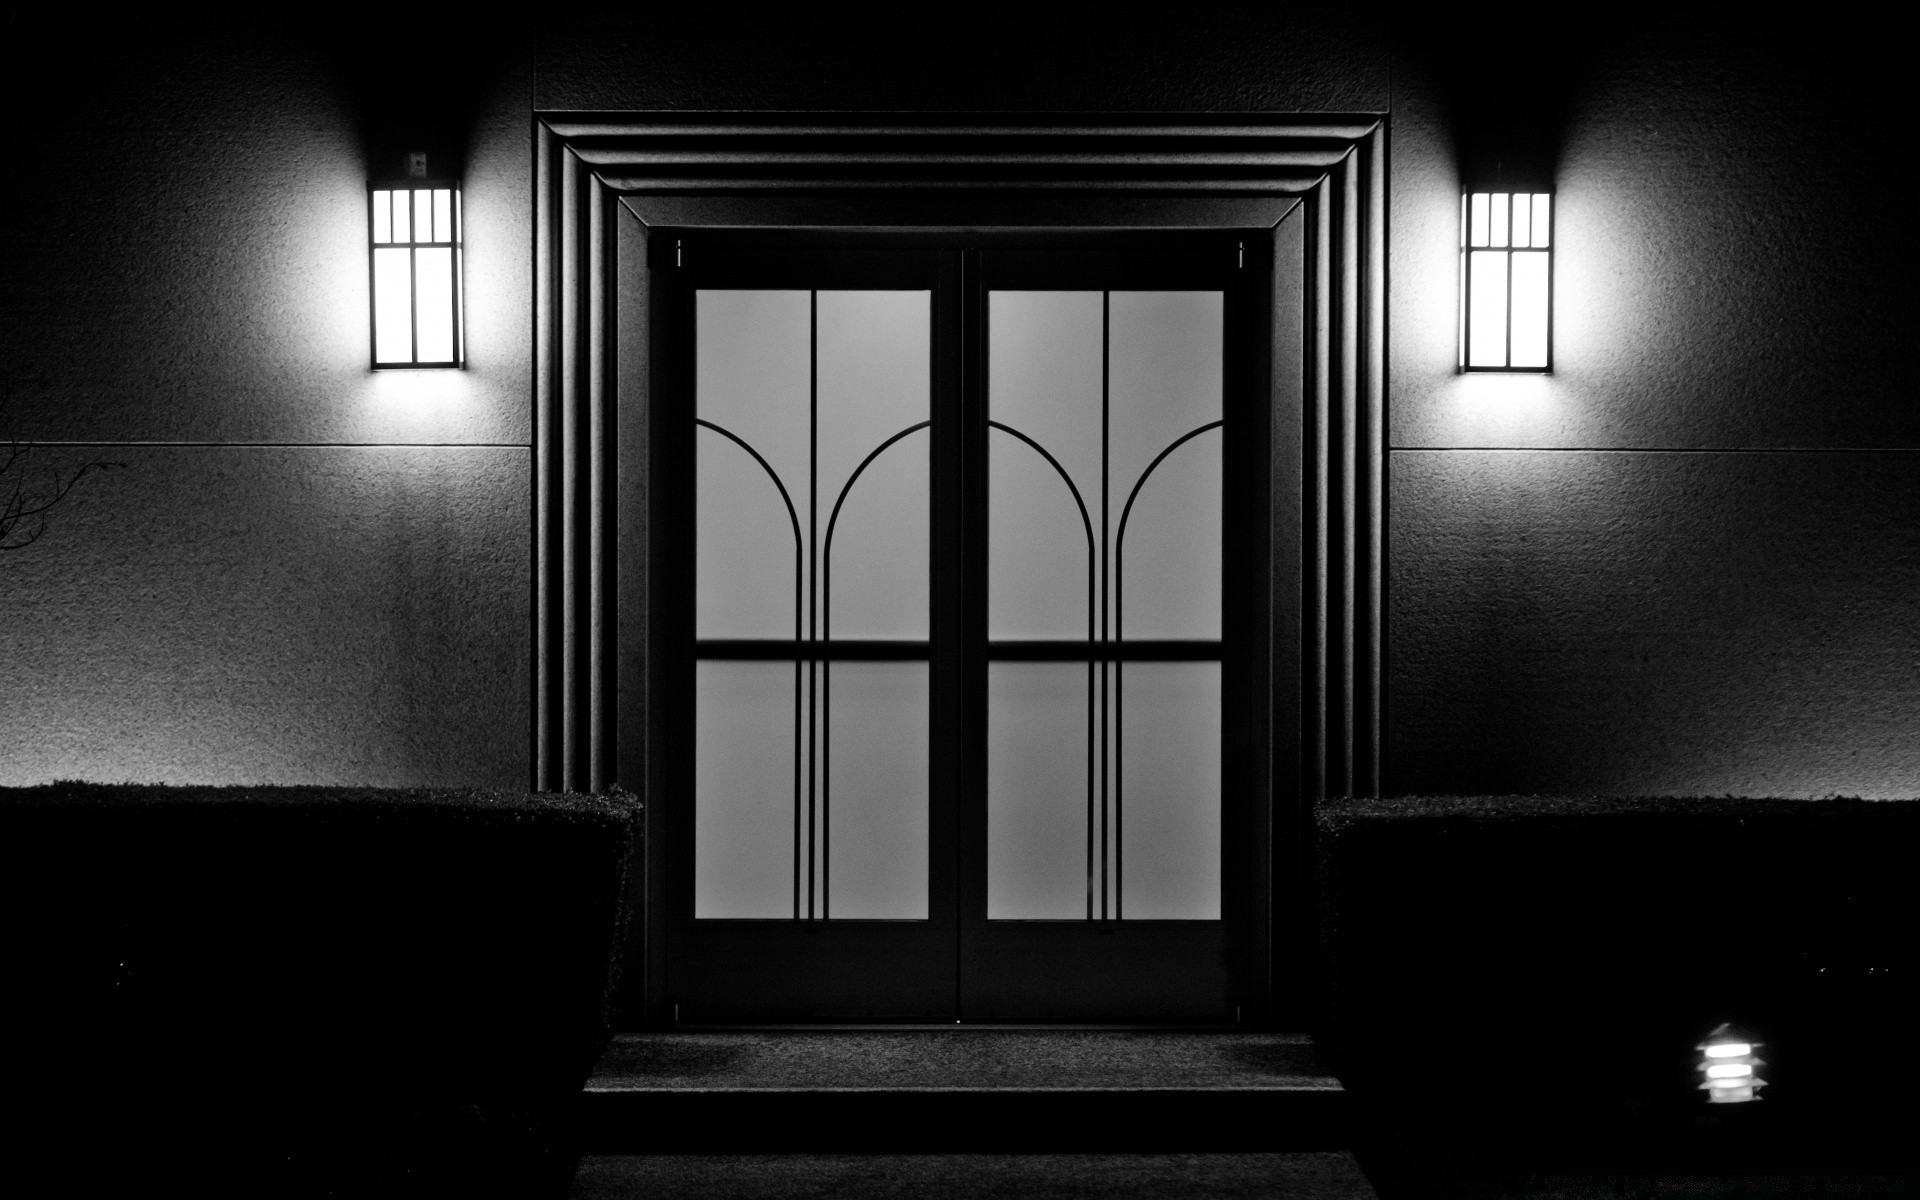 black and white window architecture light indoors house inside room dark door monochrome abandoned family empty wall shadow hallway